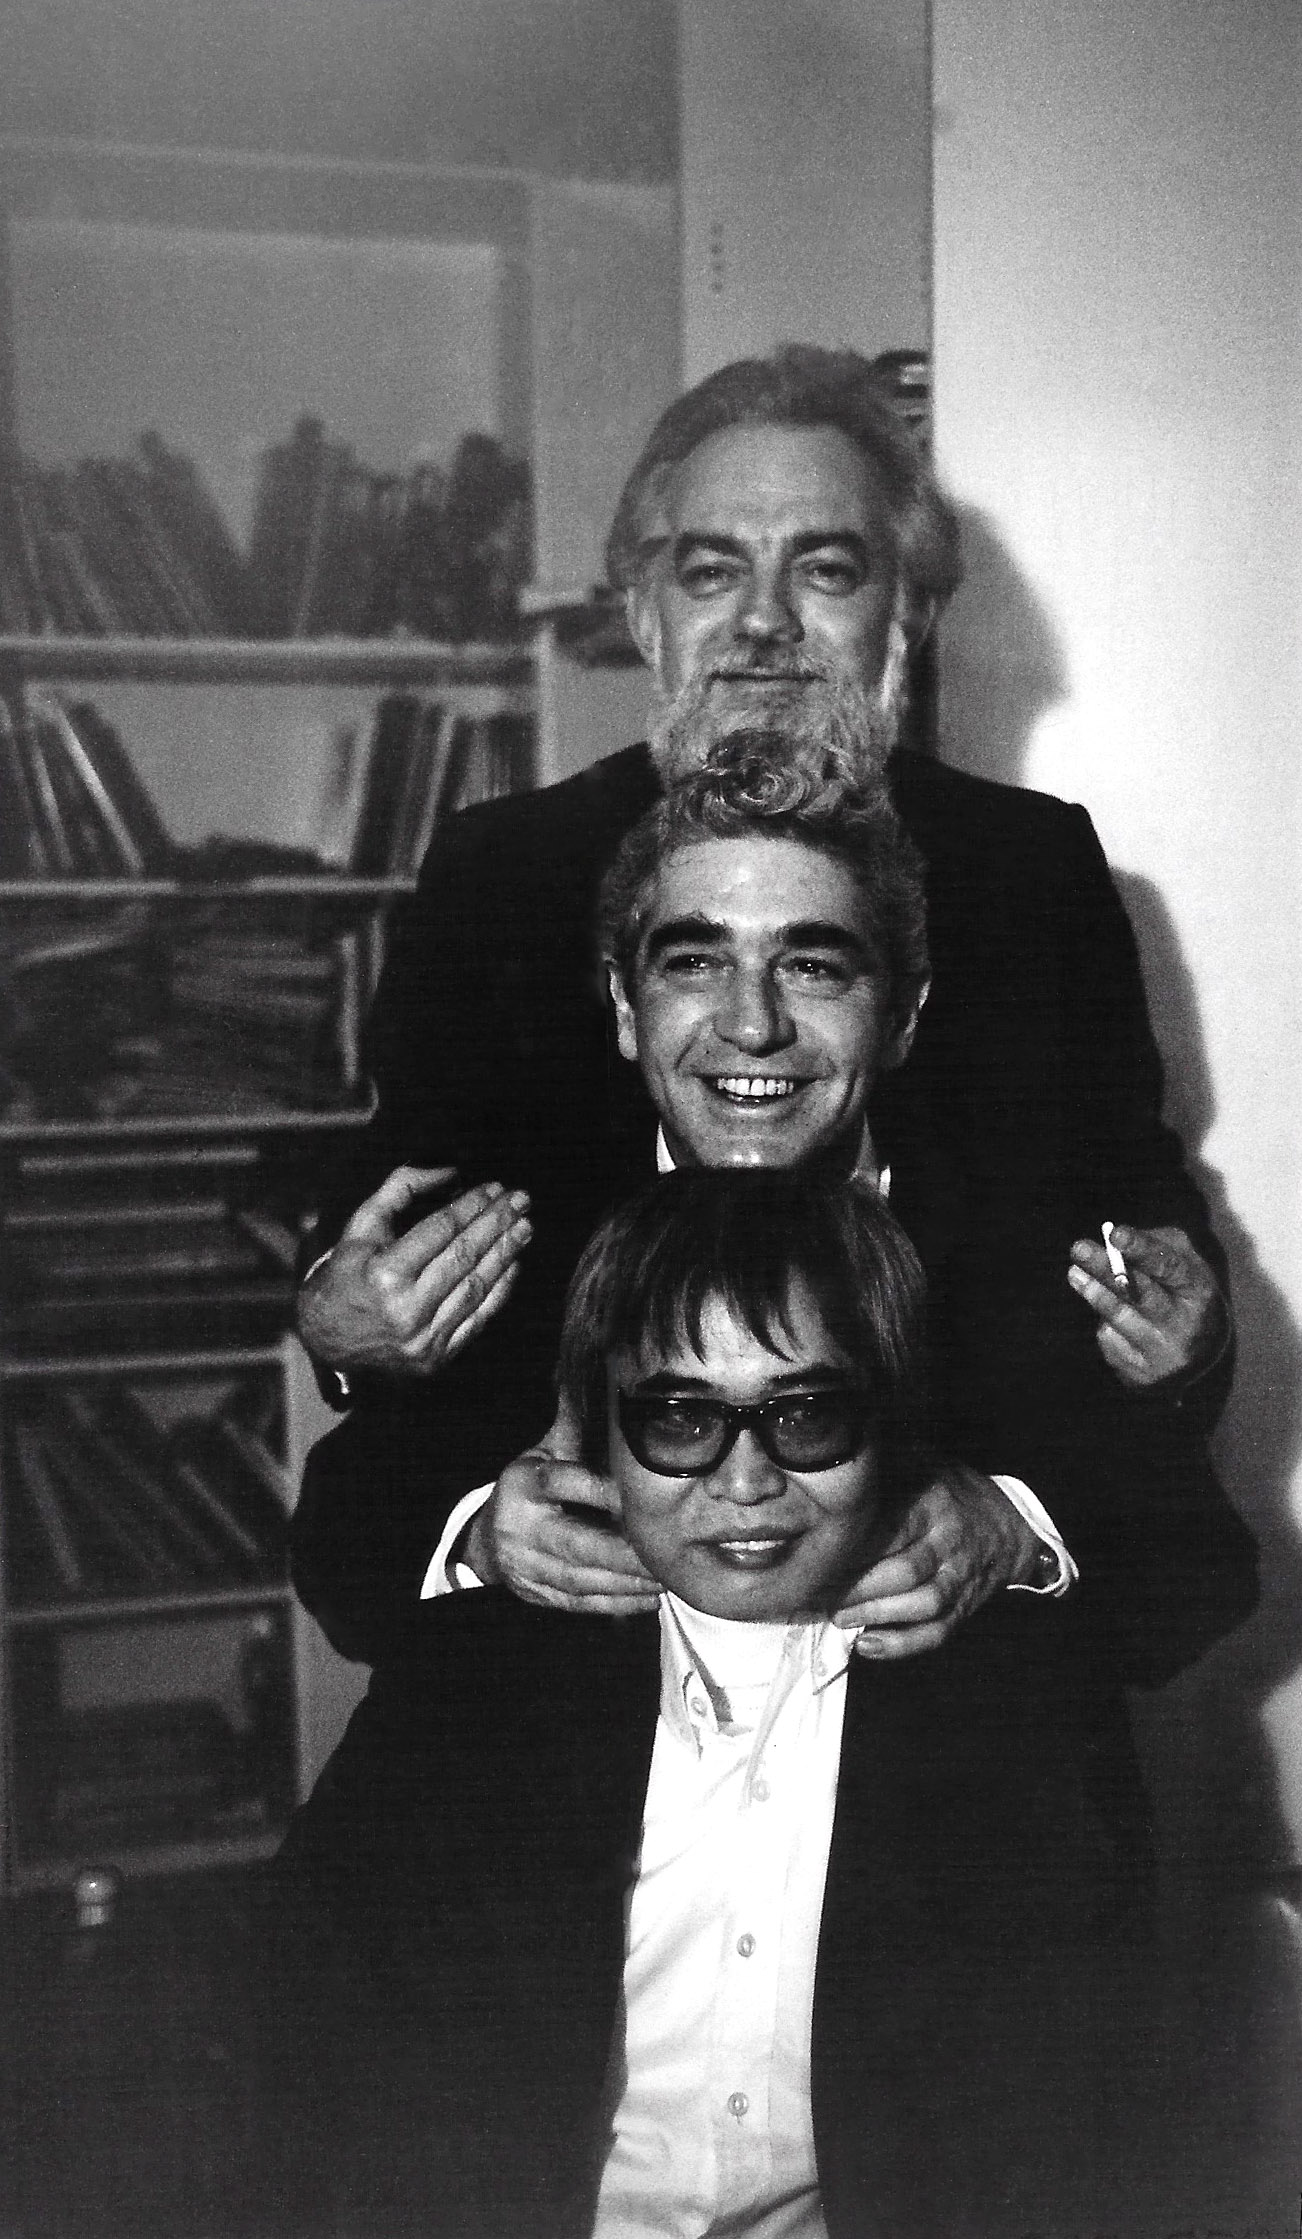 Jenkins, Maloney, and Kanemitsu in New York, 1967. Photographed by Syeus Mottel.